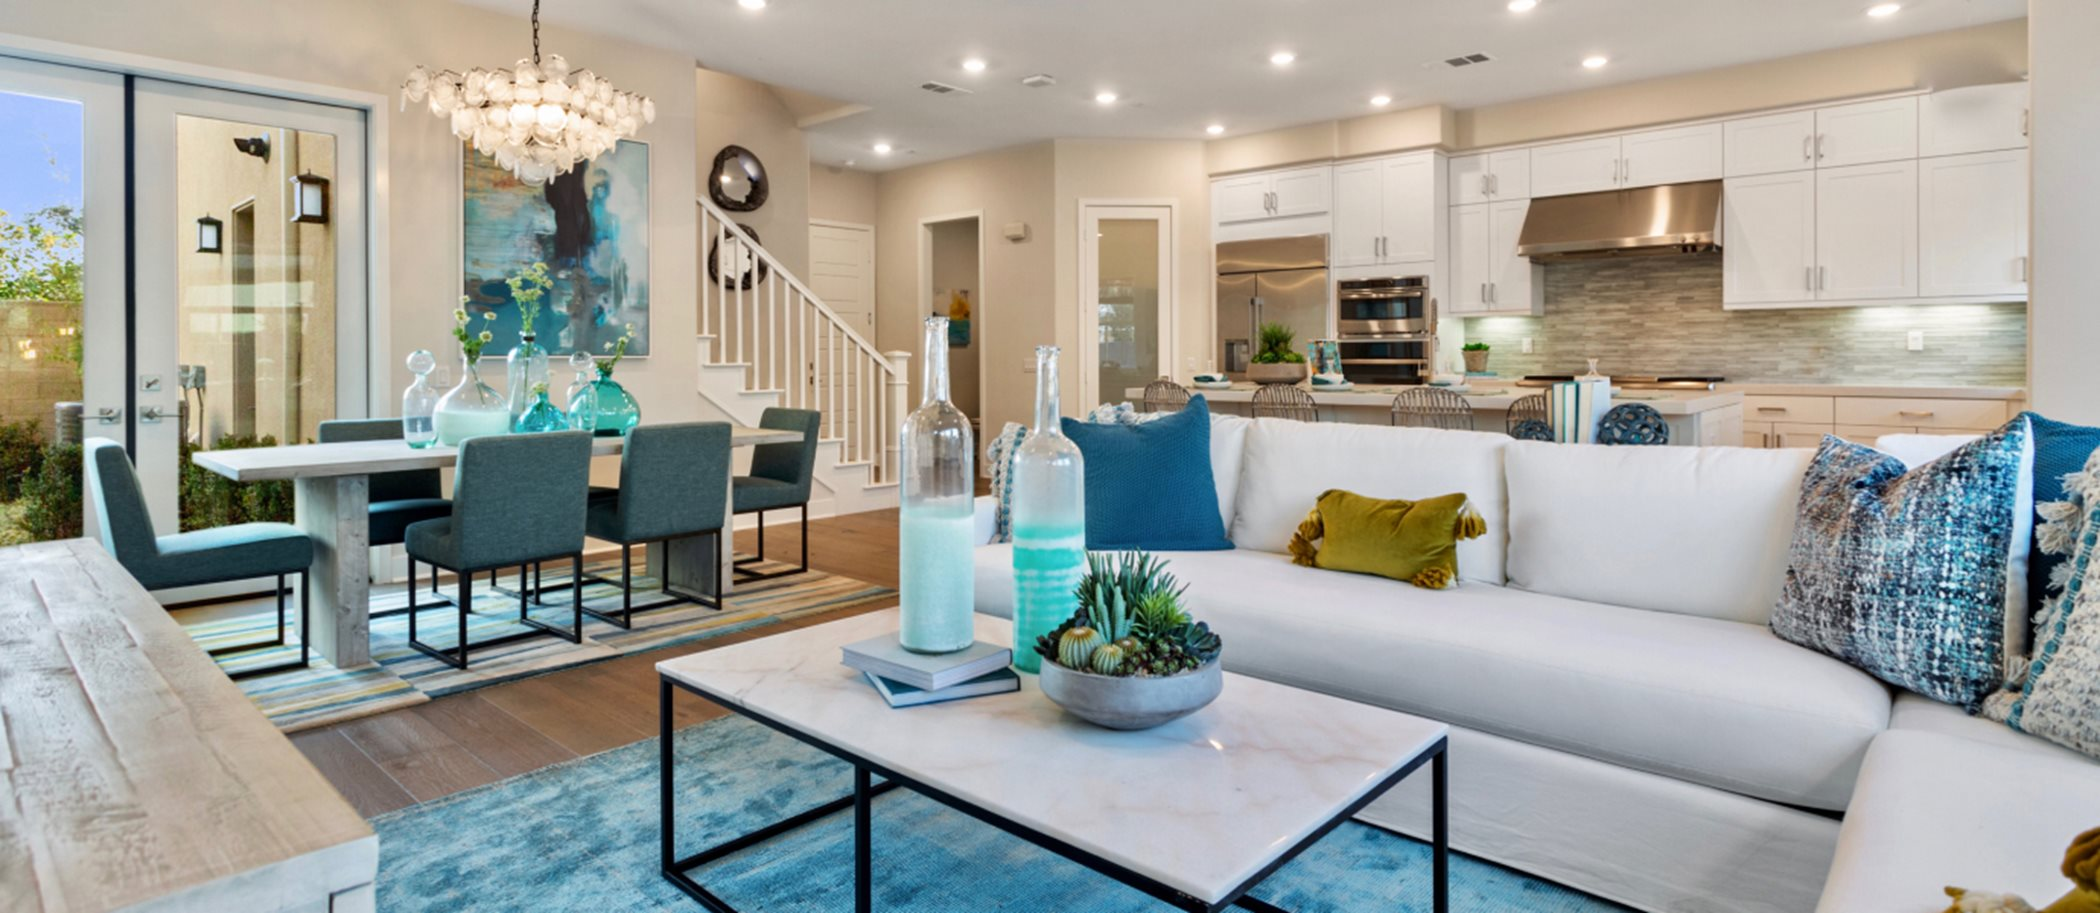 Great Park Neighborhoods Montair at Rise Residence 1 Living